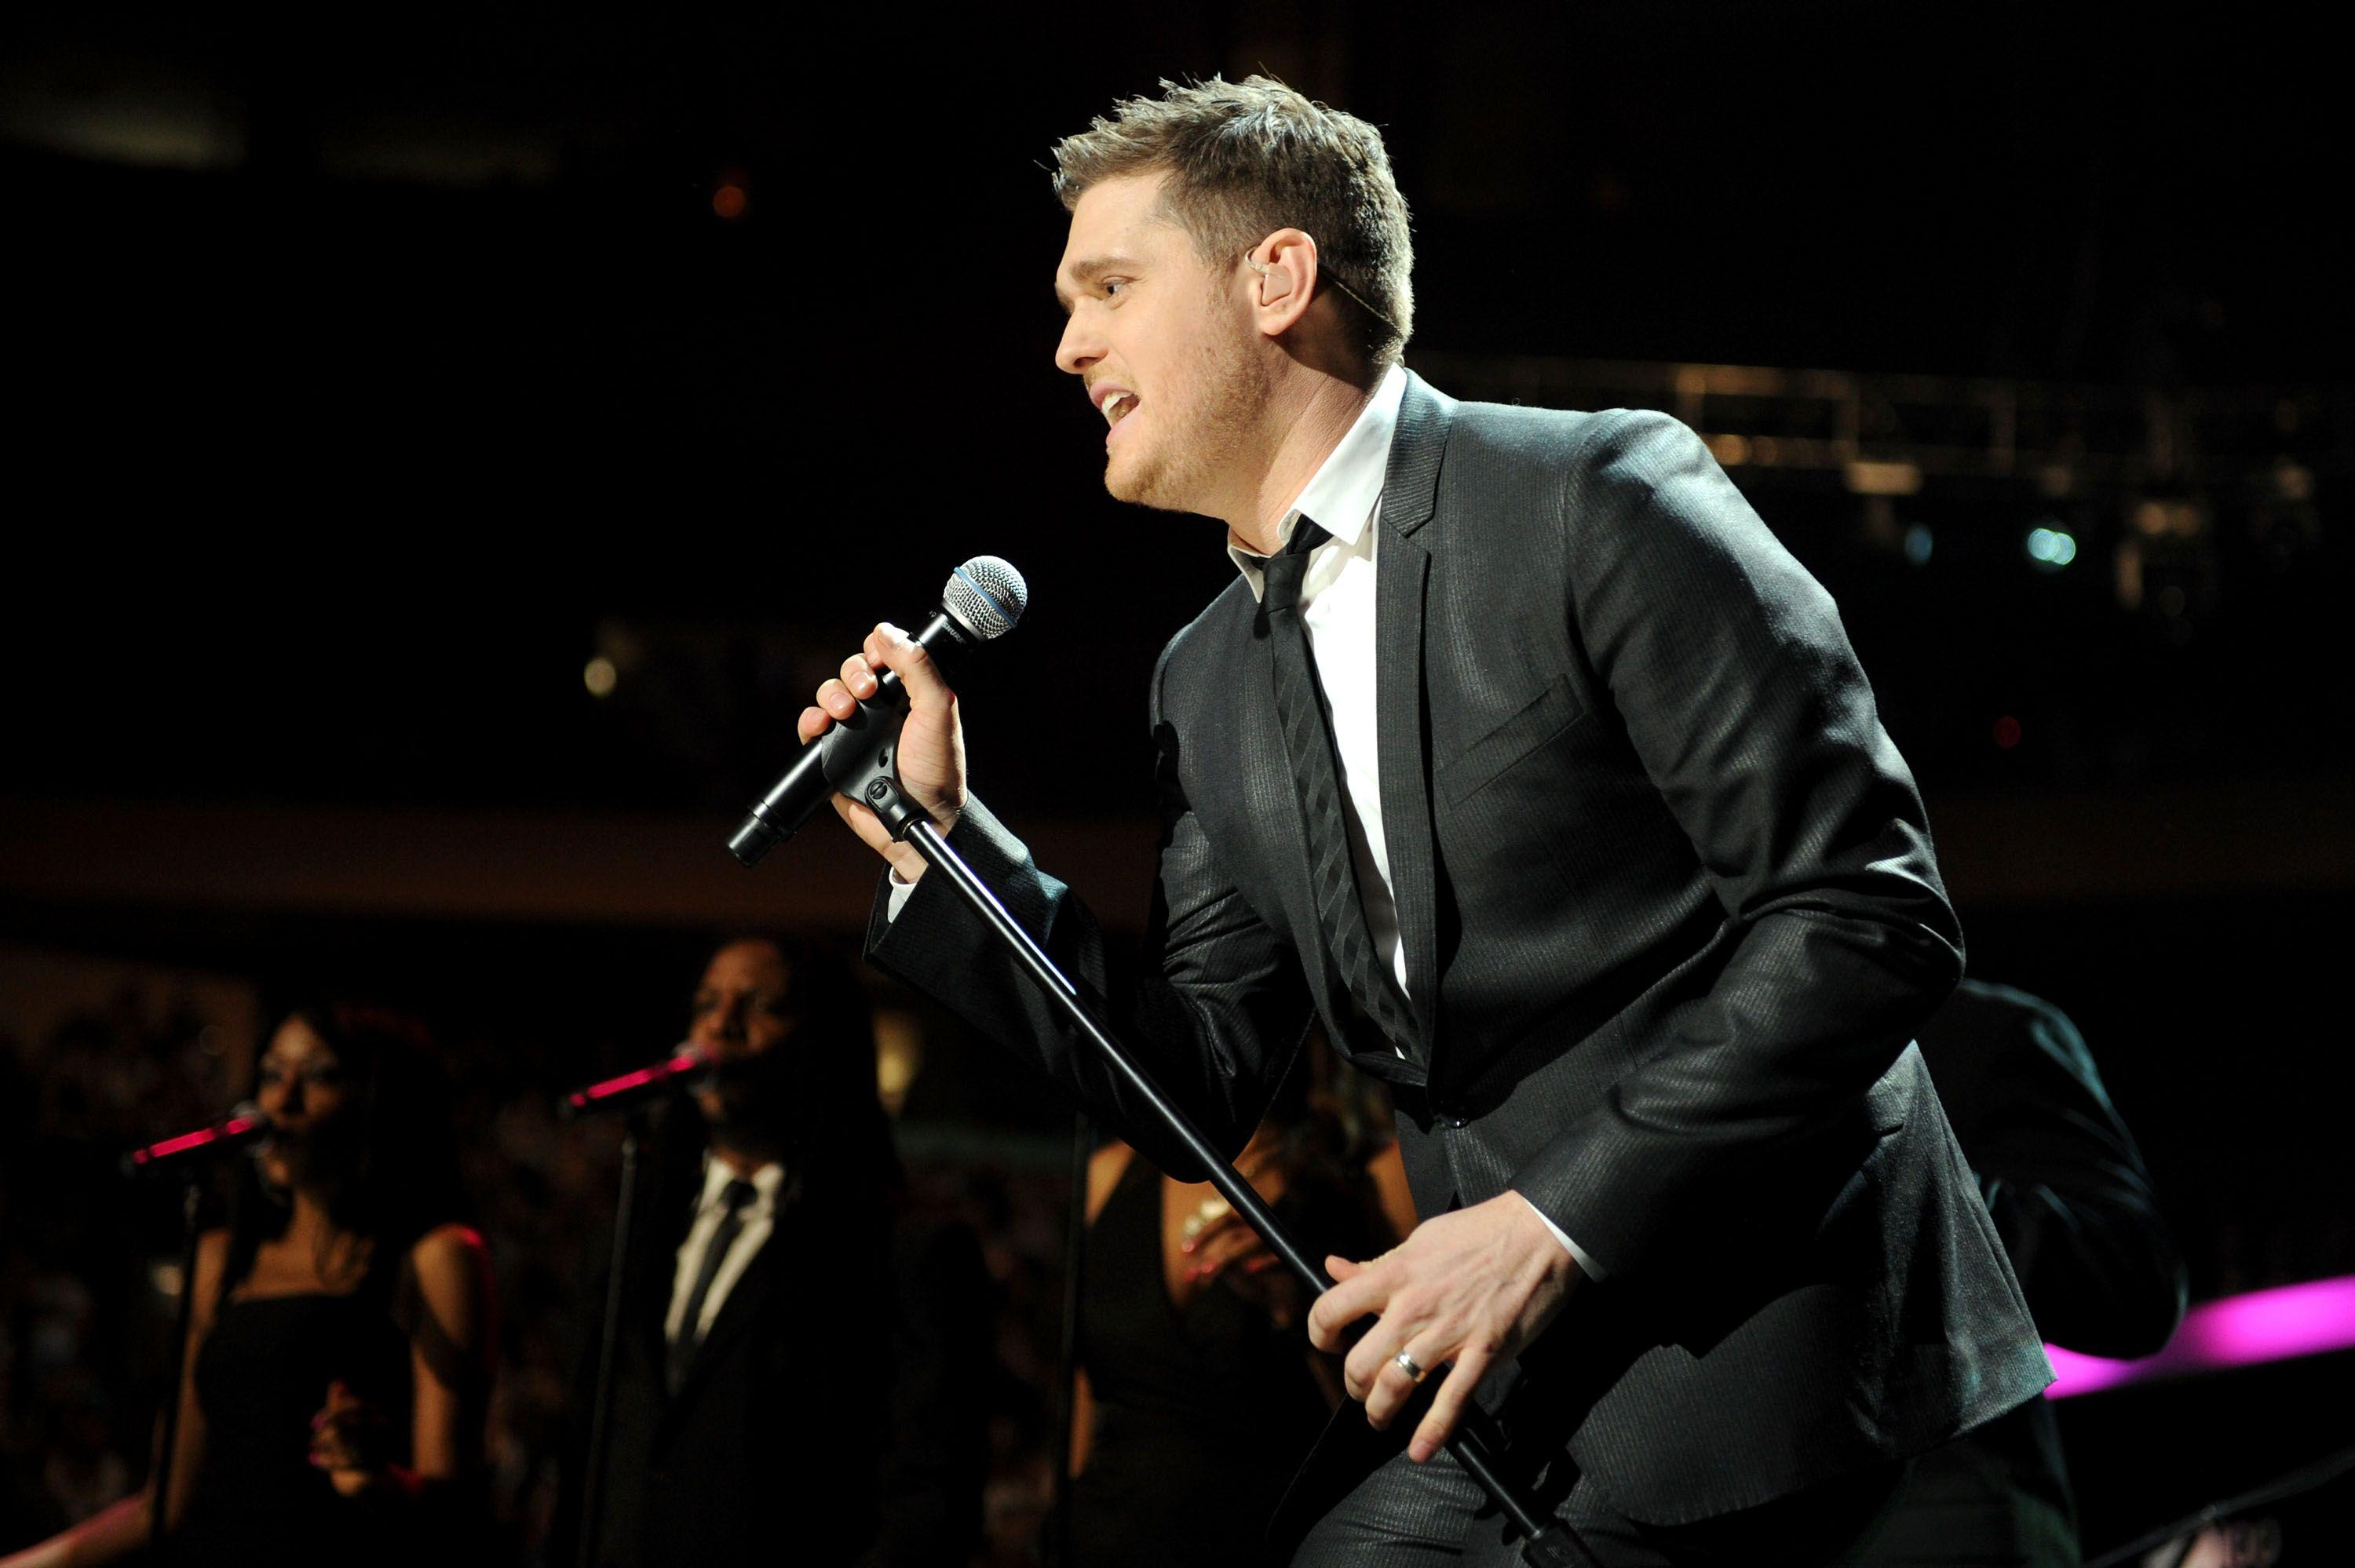 Michael Buble photo 4 of 44 pics, wallpapers